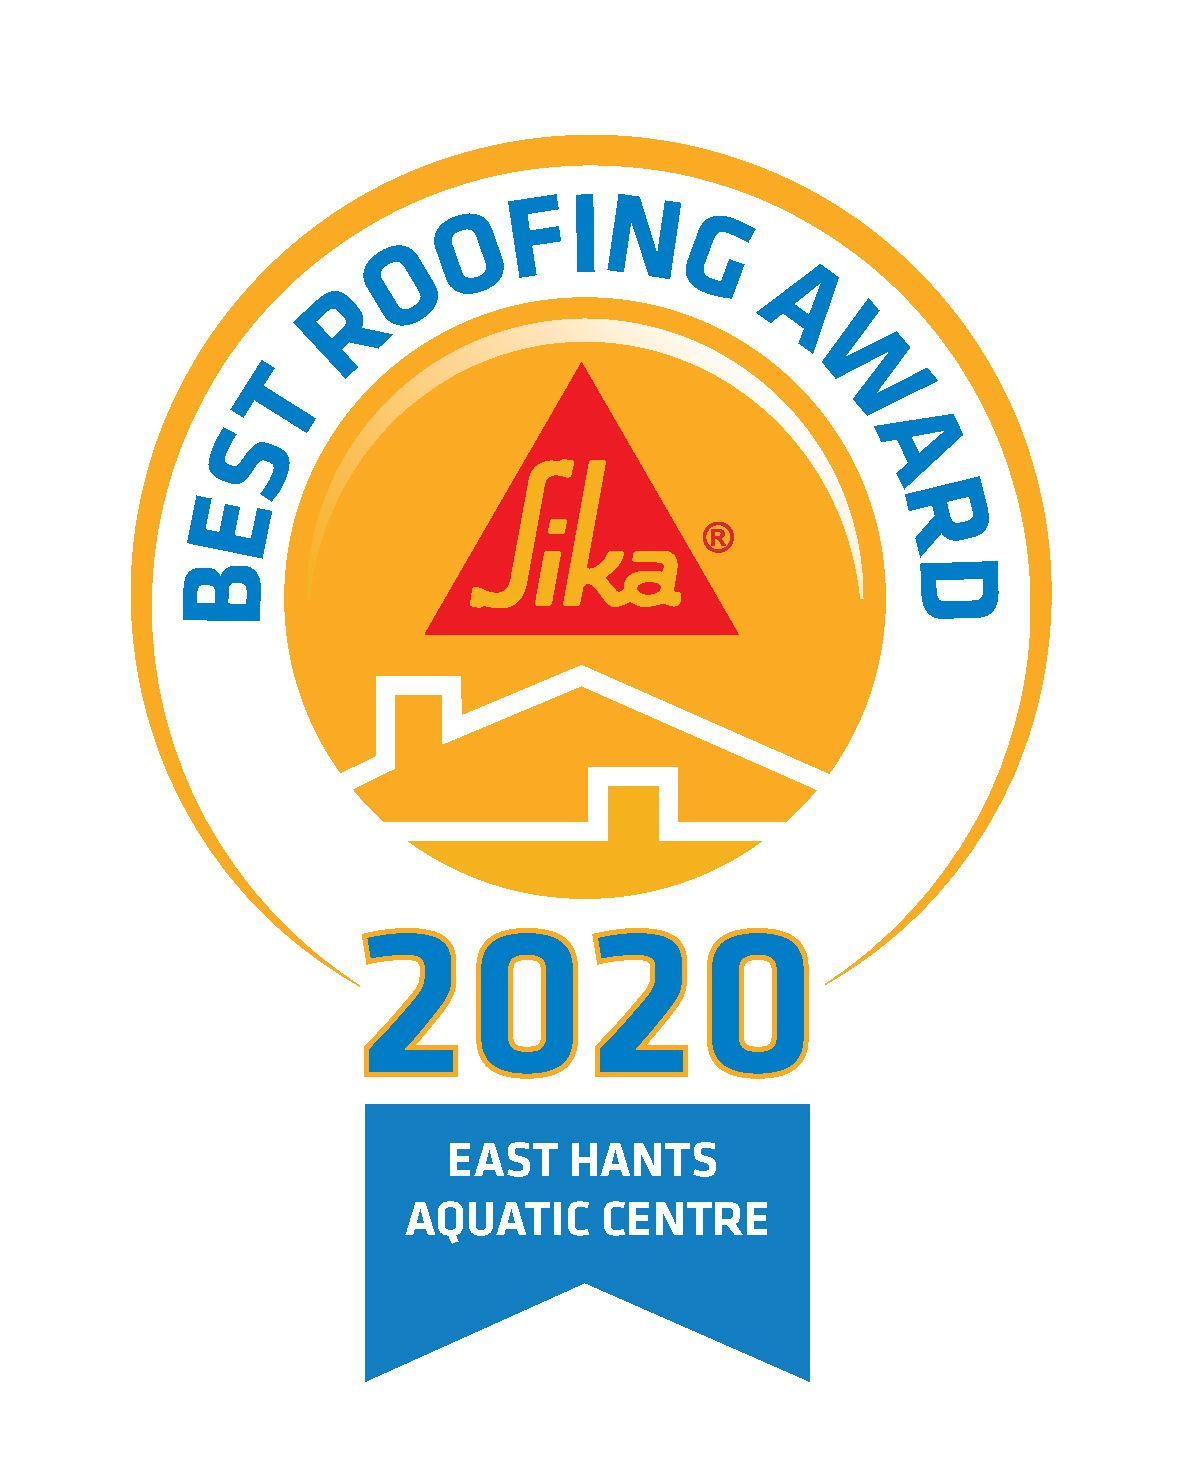 Best Roofing Award_logo_Aquatic Center